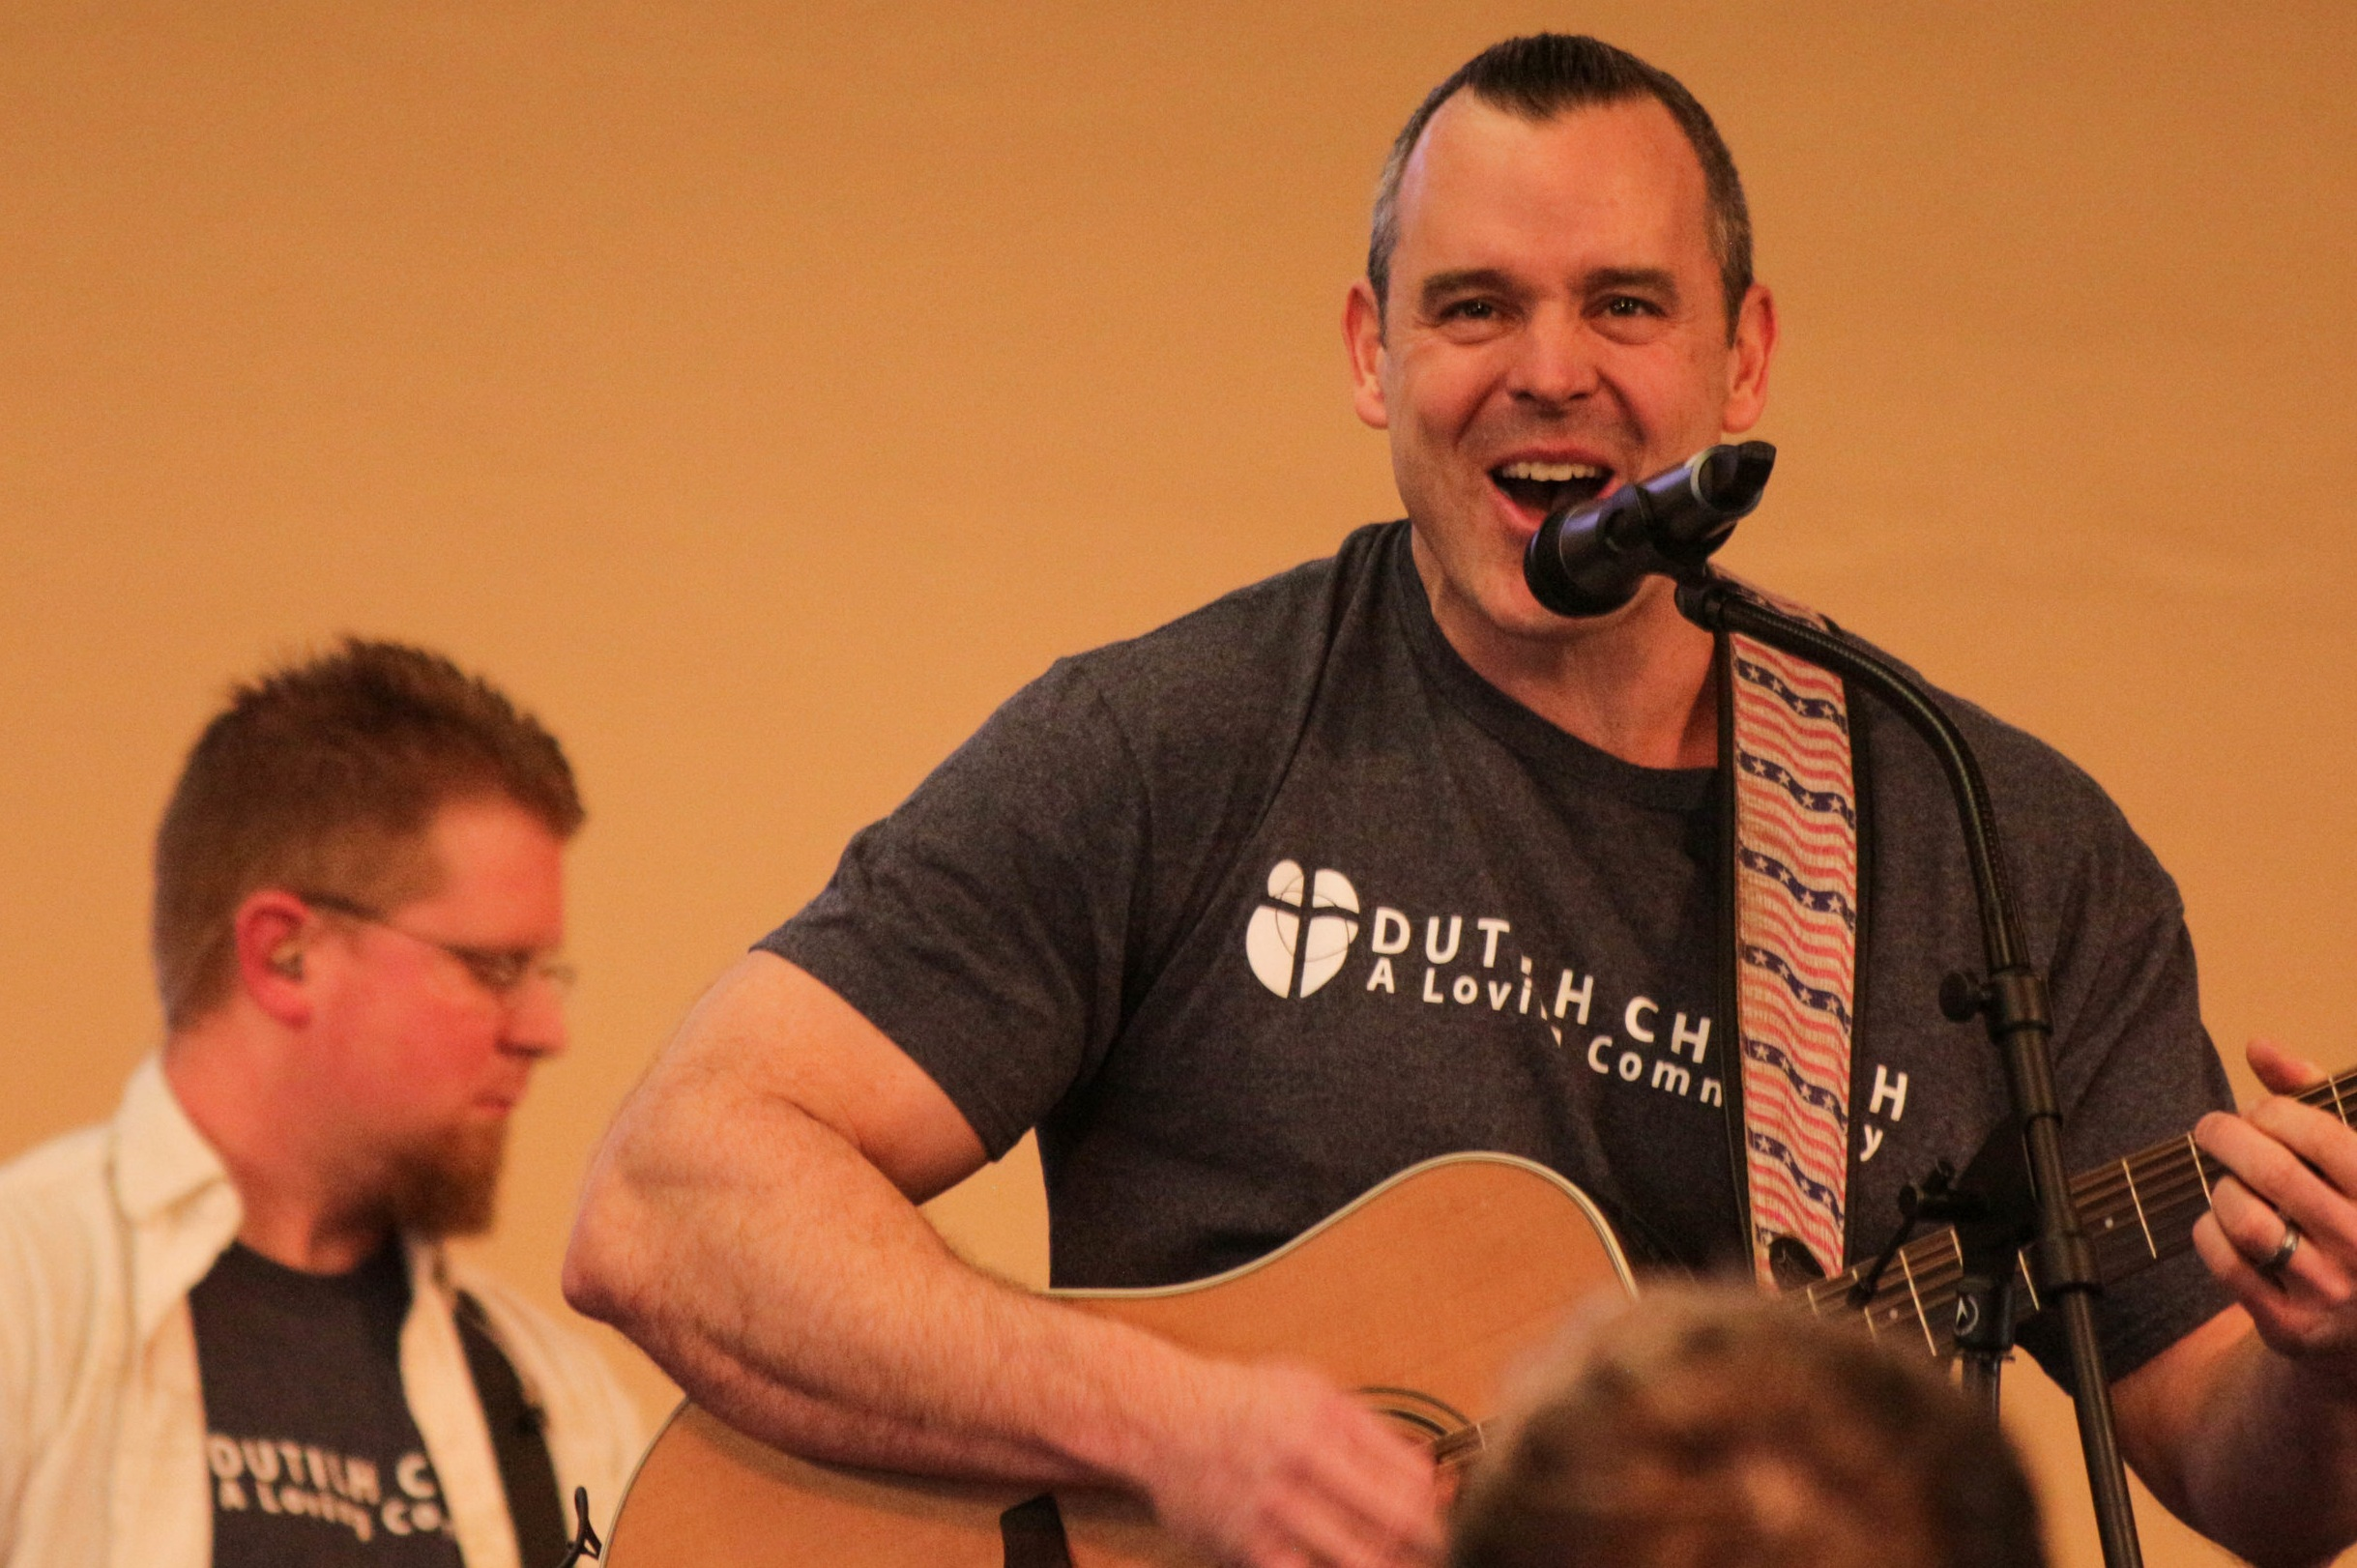 Dustin Bush leads the worship song at Dutilh's 9:30 a.m. service.   Photo courtesy of Sam Hogue.